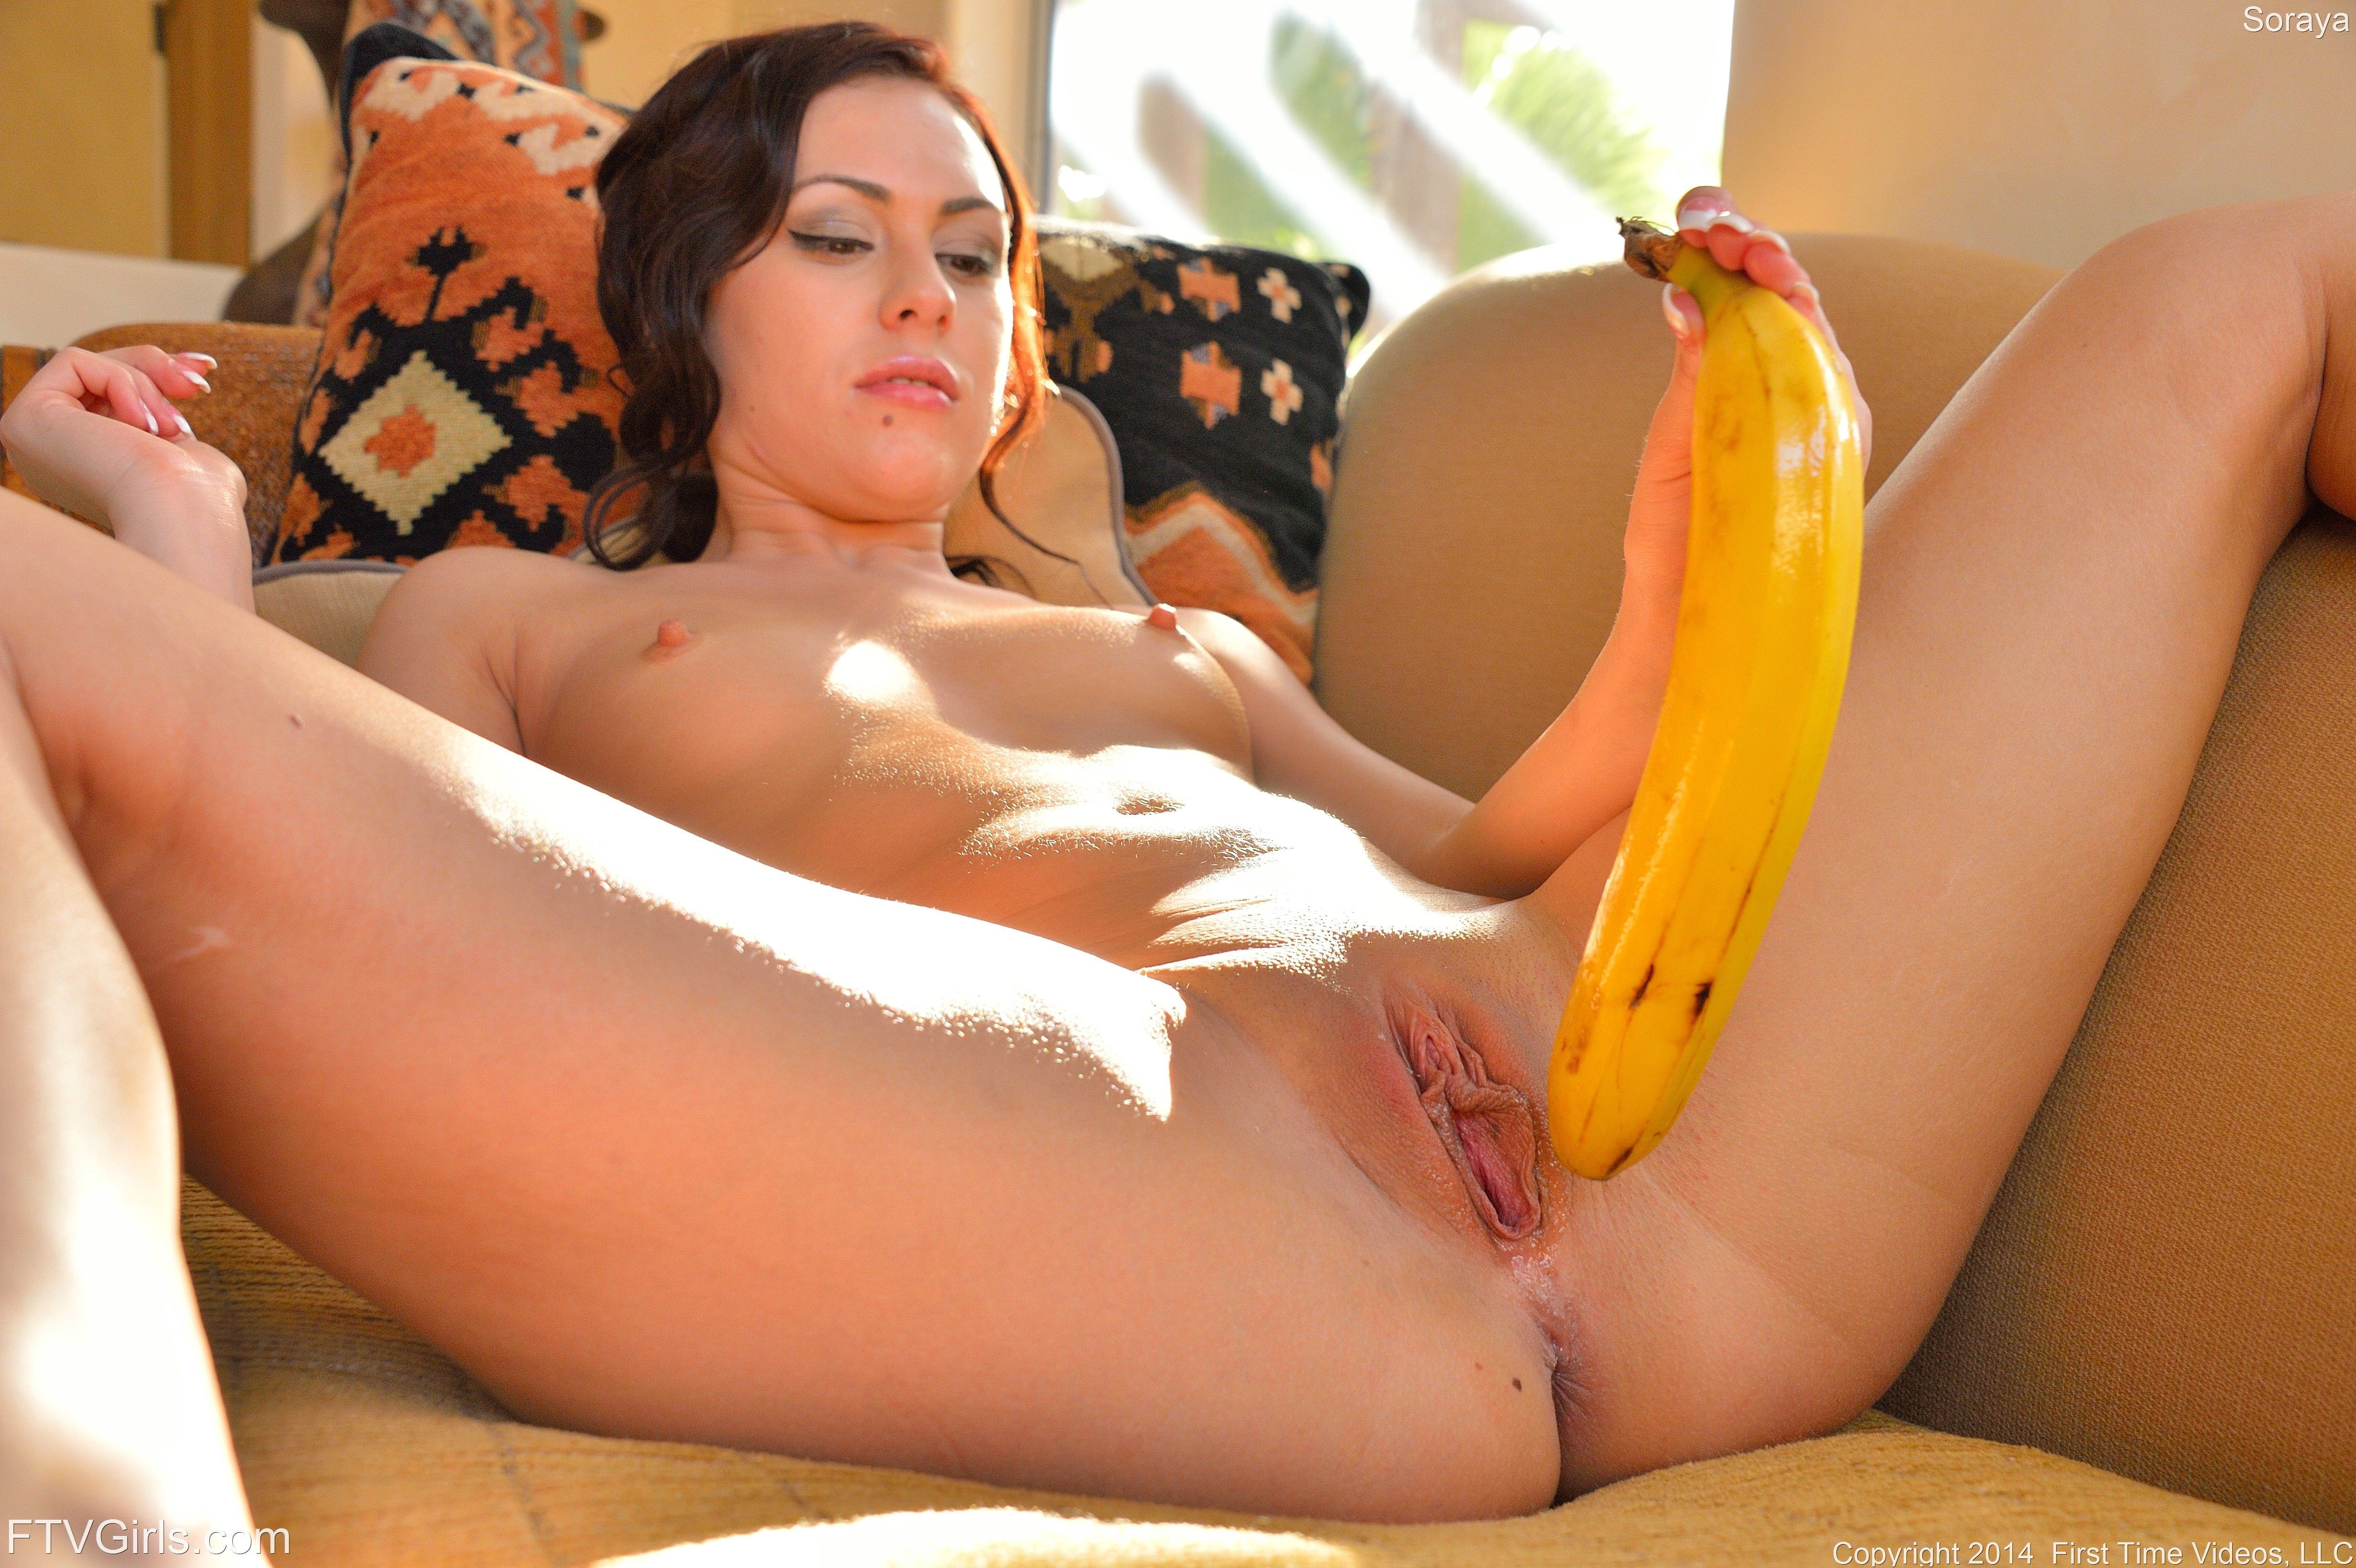 For that Girls having sex with banana